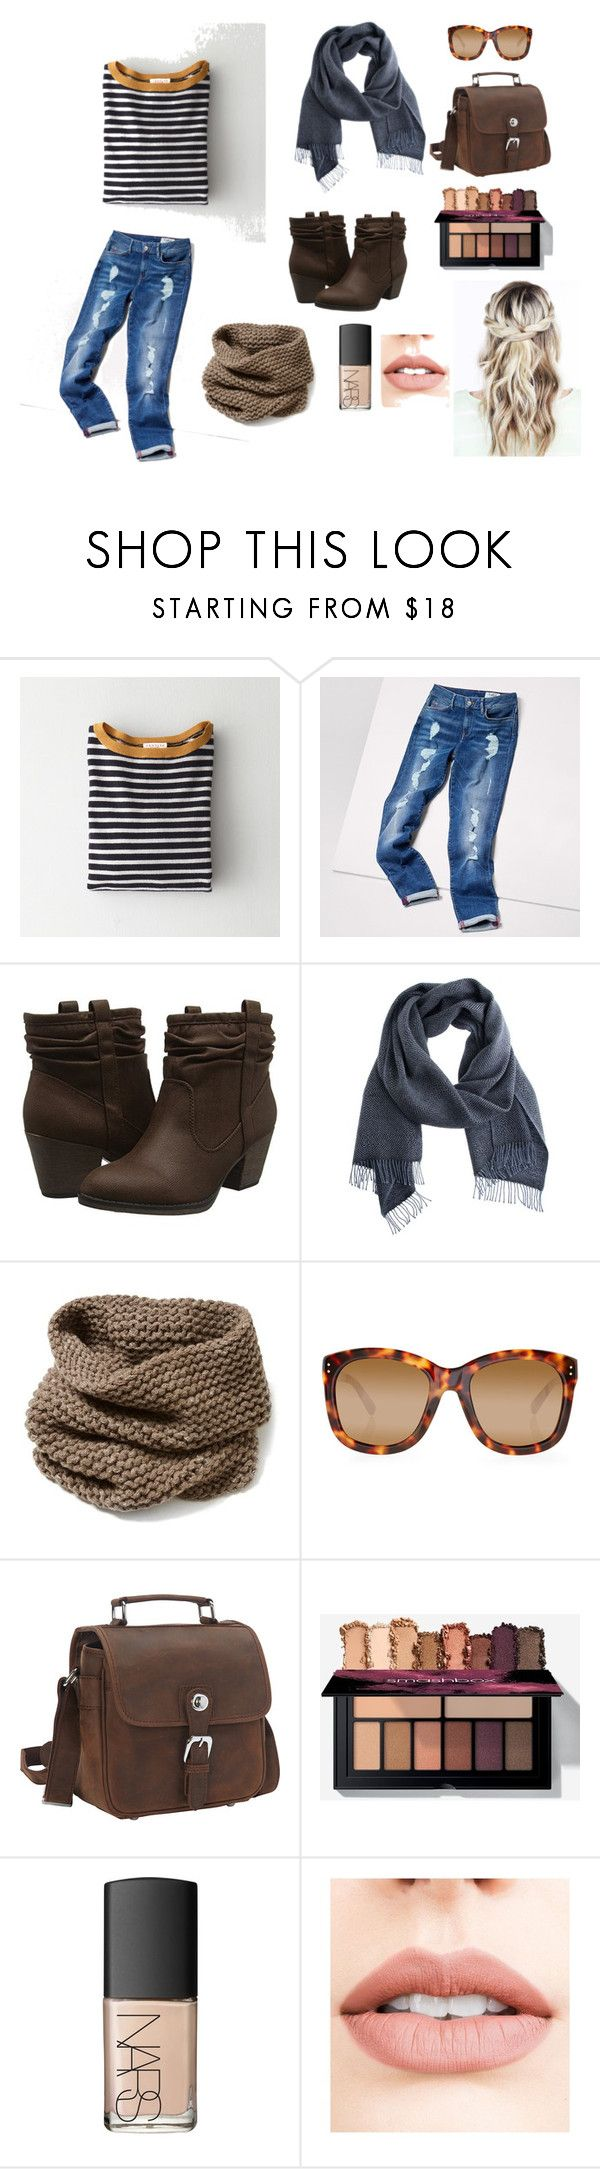 """""""Casual Street Style"""" by melanie-ottman ❤ liked on Polyvore featuring Demylee, Tommy Hilfiger, Rocket Dog, Lafayette 148 New York, Linda Farrow, Vagabond Traveler, NARS Cosmetics and Jouer"""